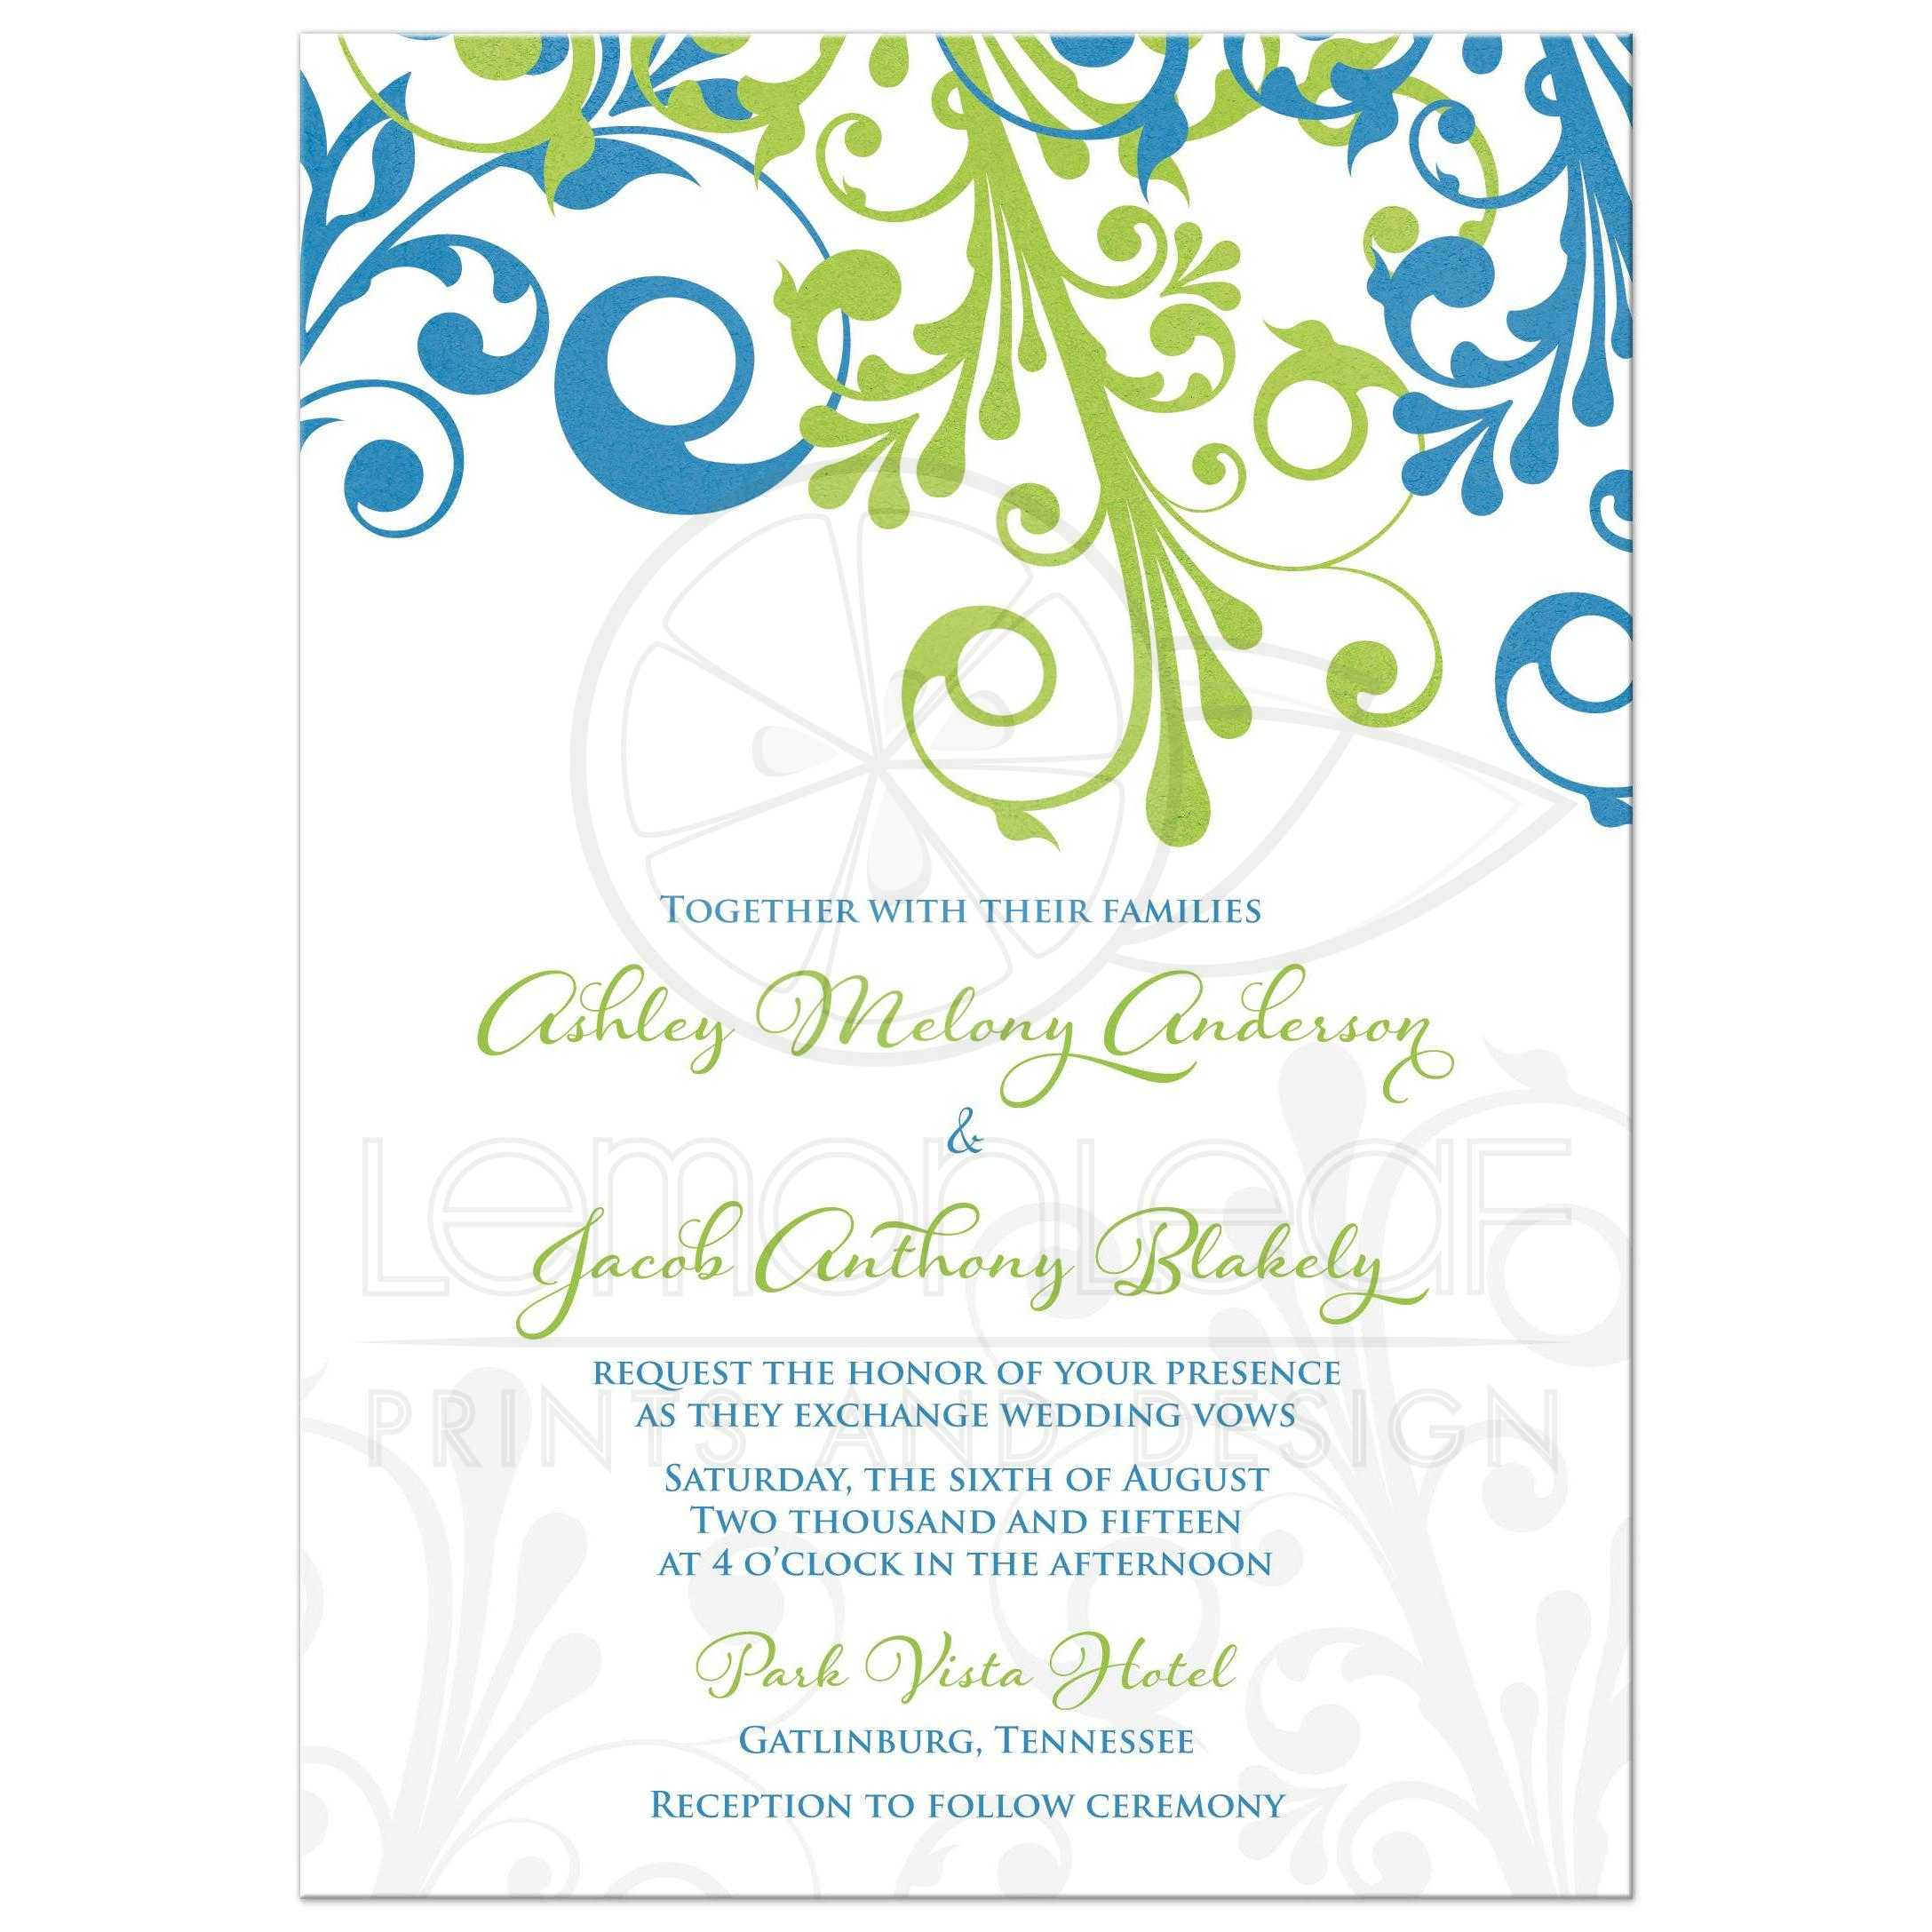 Cerulean Blue And Lime Green Modern Abstract Floral Wedding Invitation Front: Cly Modern Elegant Wedding Invitations At Websimilar.org